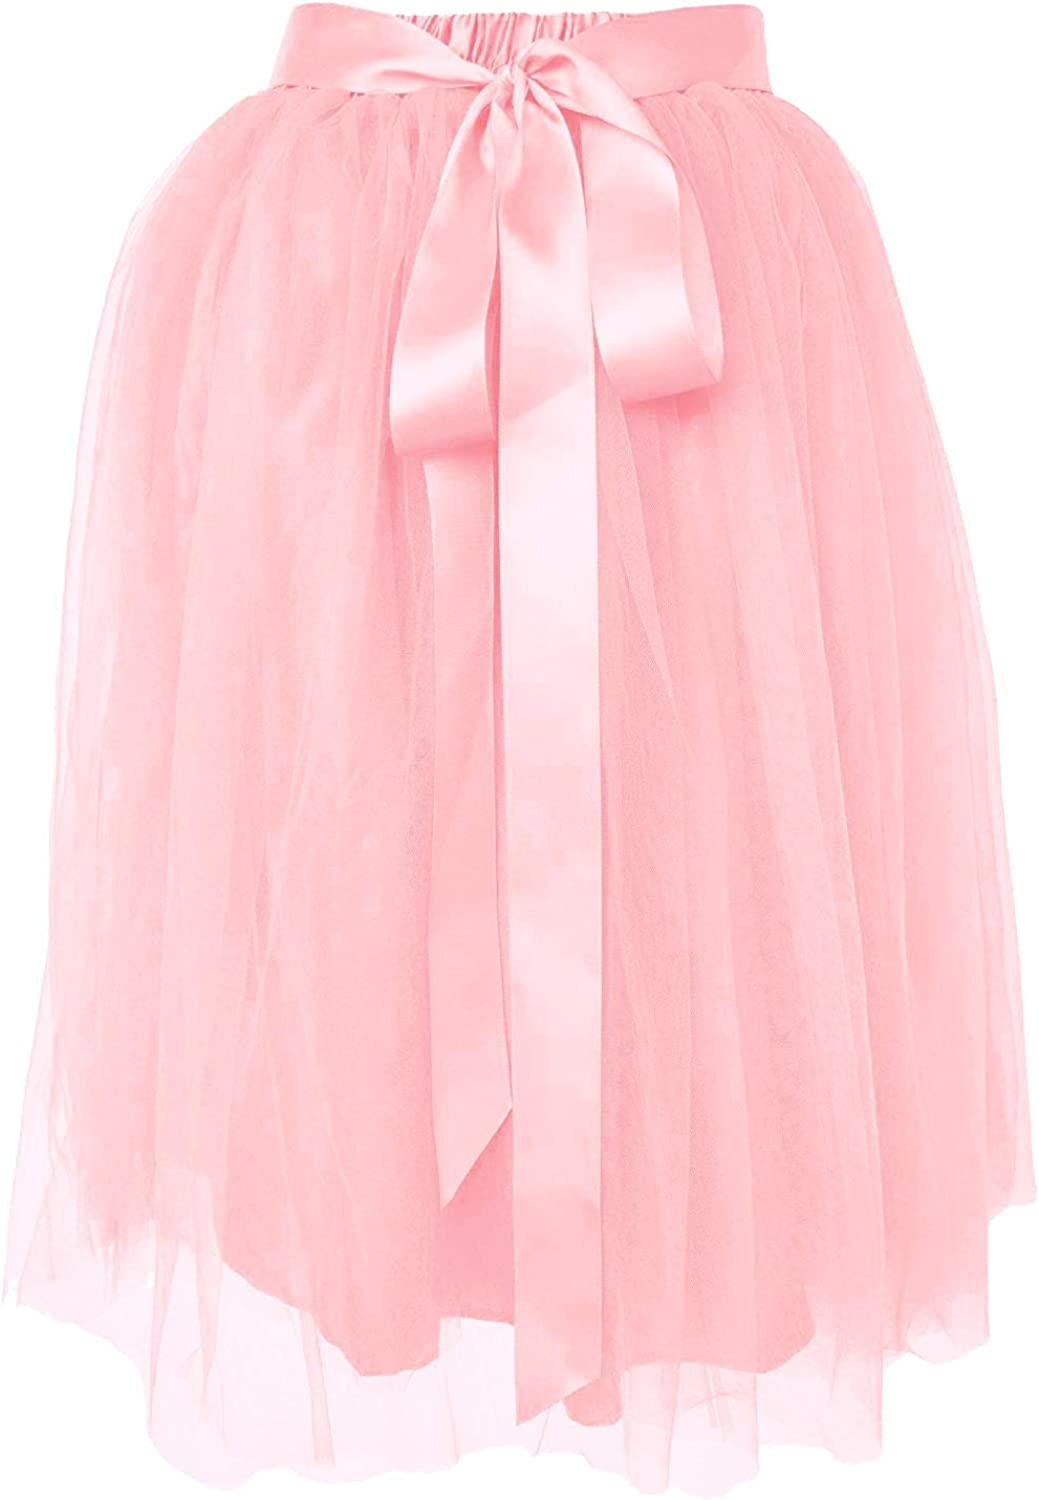 Dancina Women's Knee Length Tutu A Line Layered Tulle Skirt for Dates Prom Party